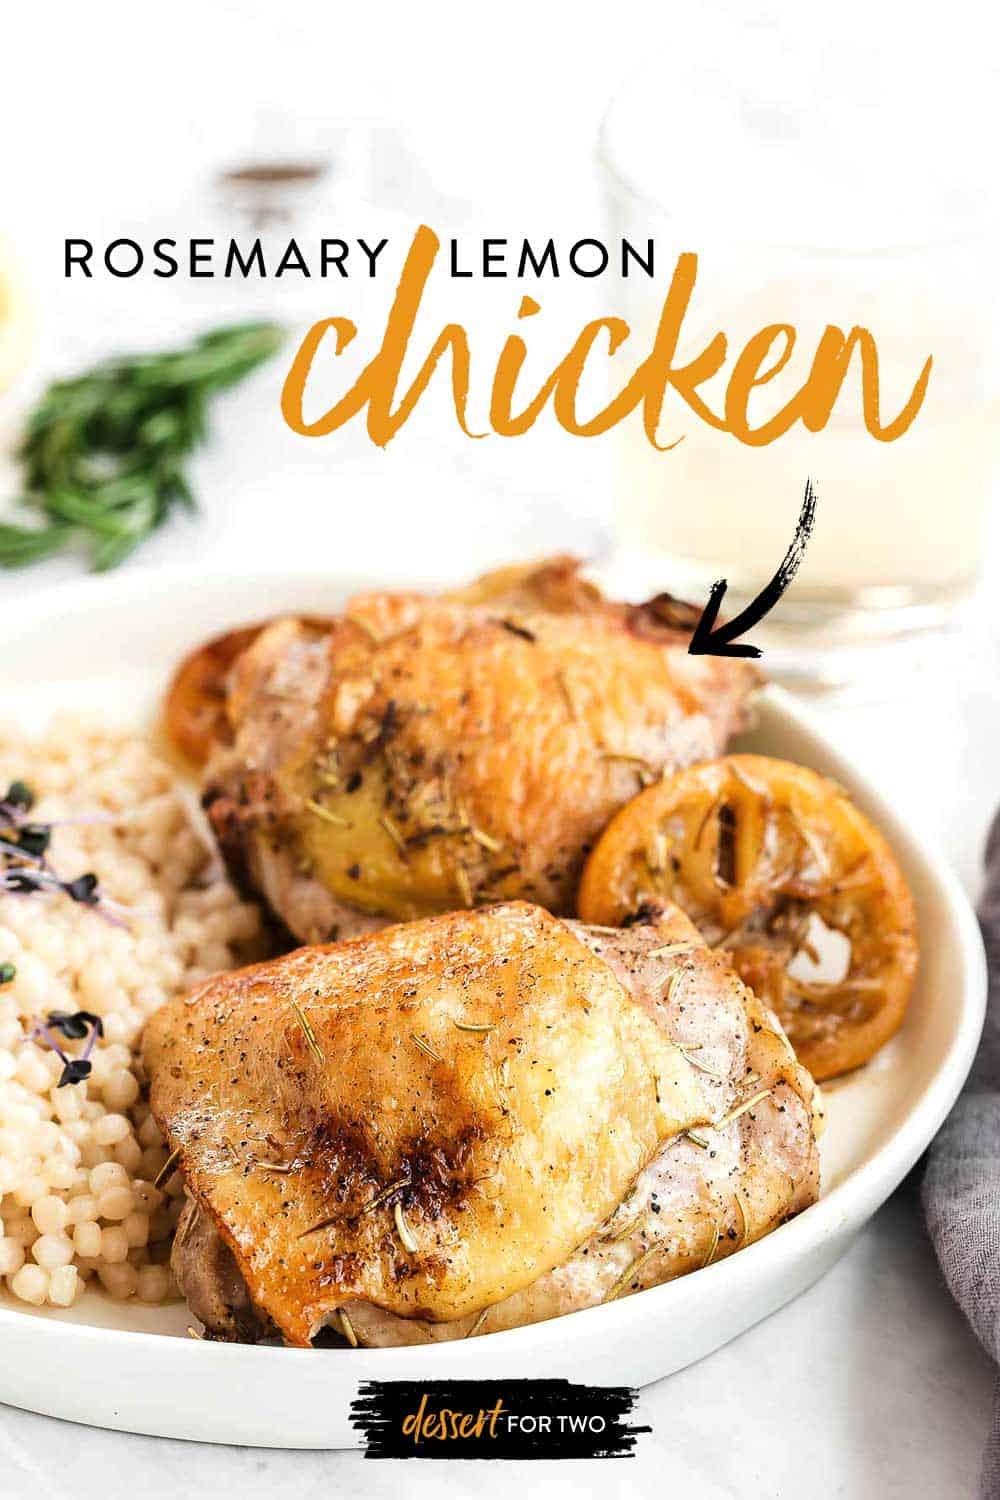 Lemon rosemary chicken thighs for two. Easy lemon rosemary chicken marinade for baked chicken thighs. #rosemarychicken #chicken #chickenthighs #lemonrosemary #chickenfortwo #dinnerfortwo #cookingfortwo